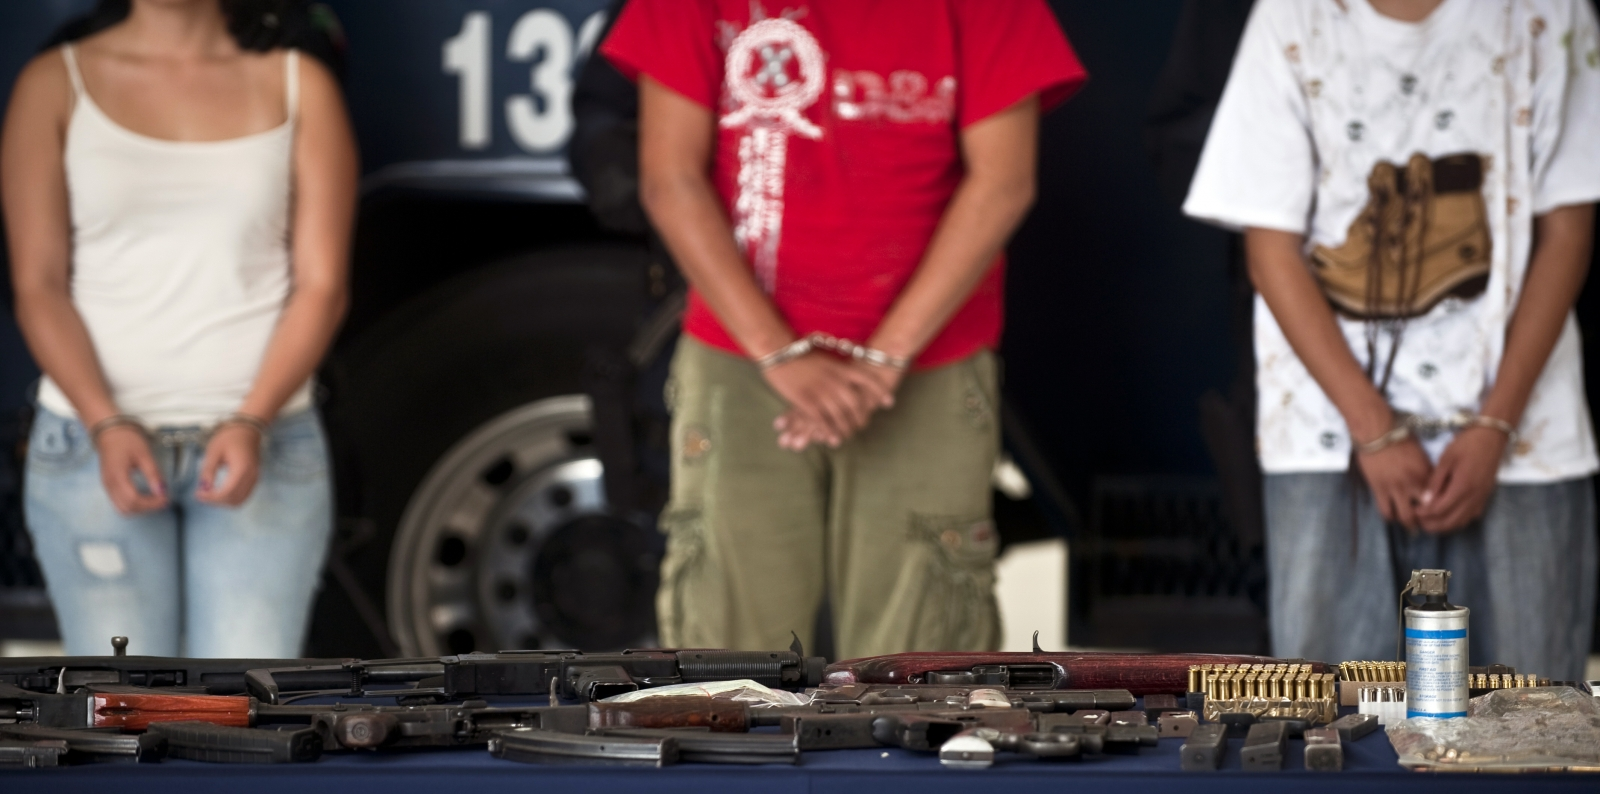 Cannibal drugs cartel made member eat human hearts, it was claimed